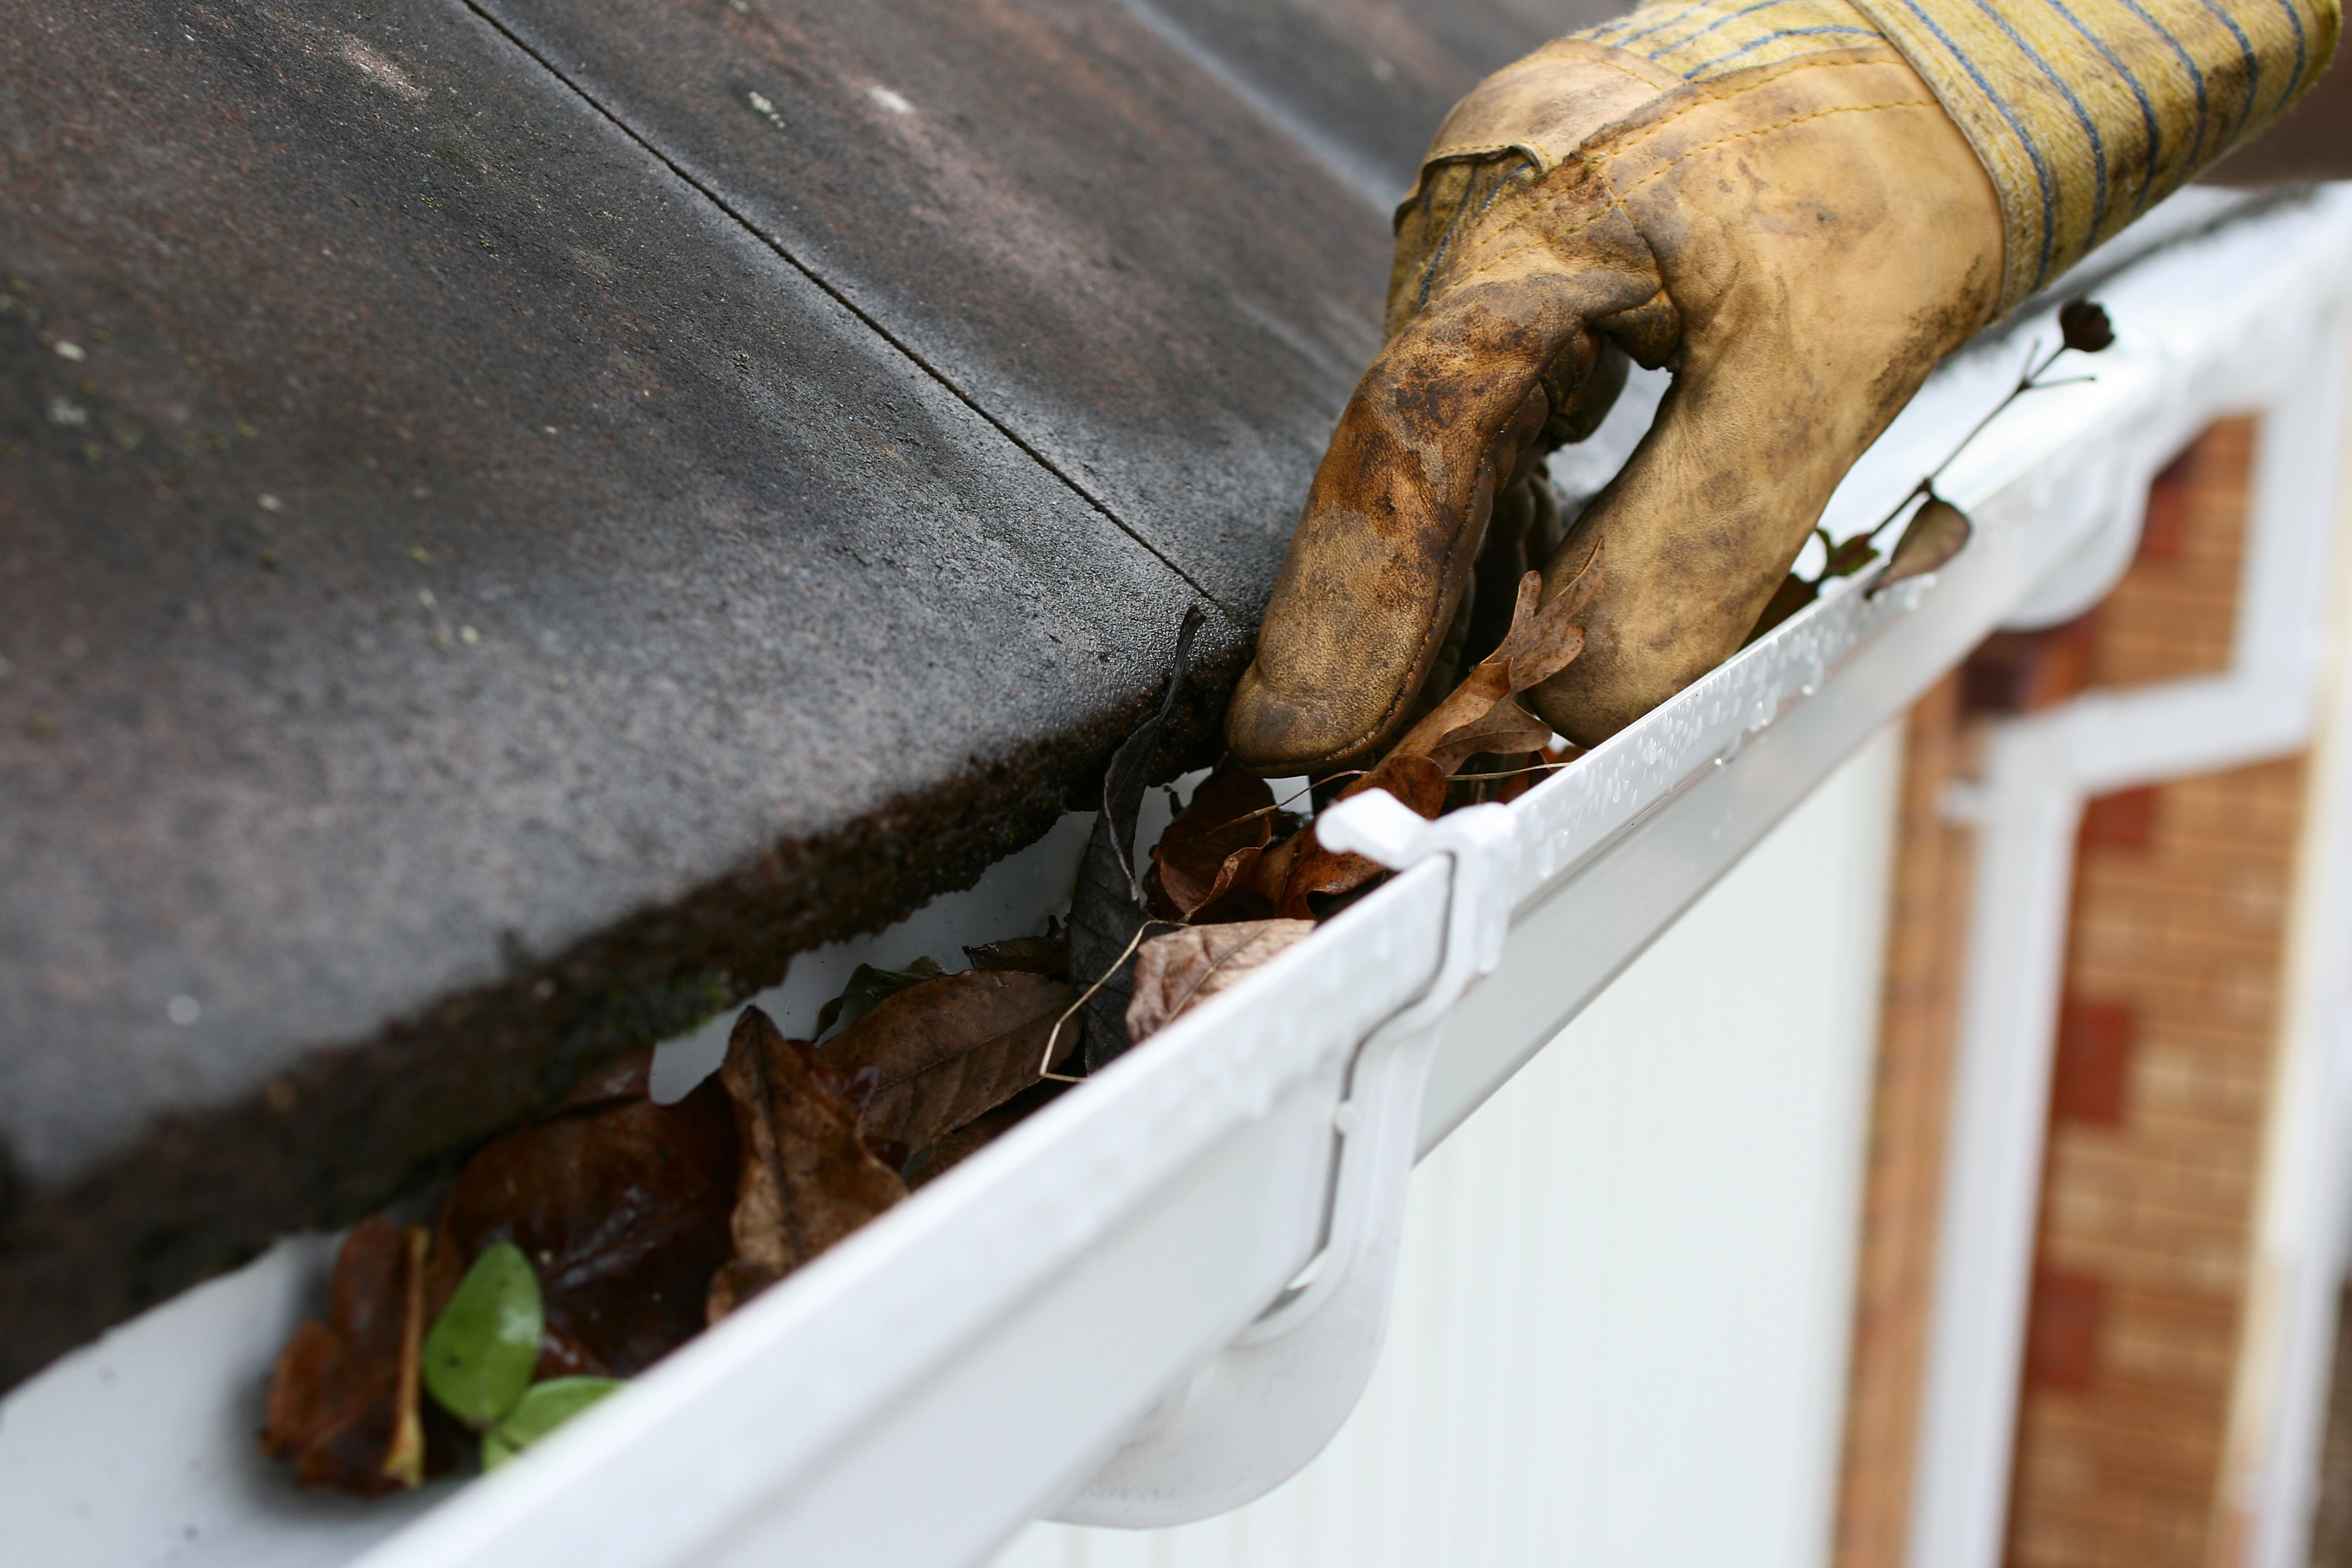 Closeup of a gloved hand cleaning gutters